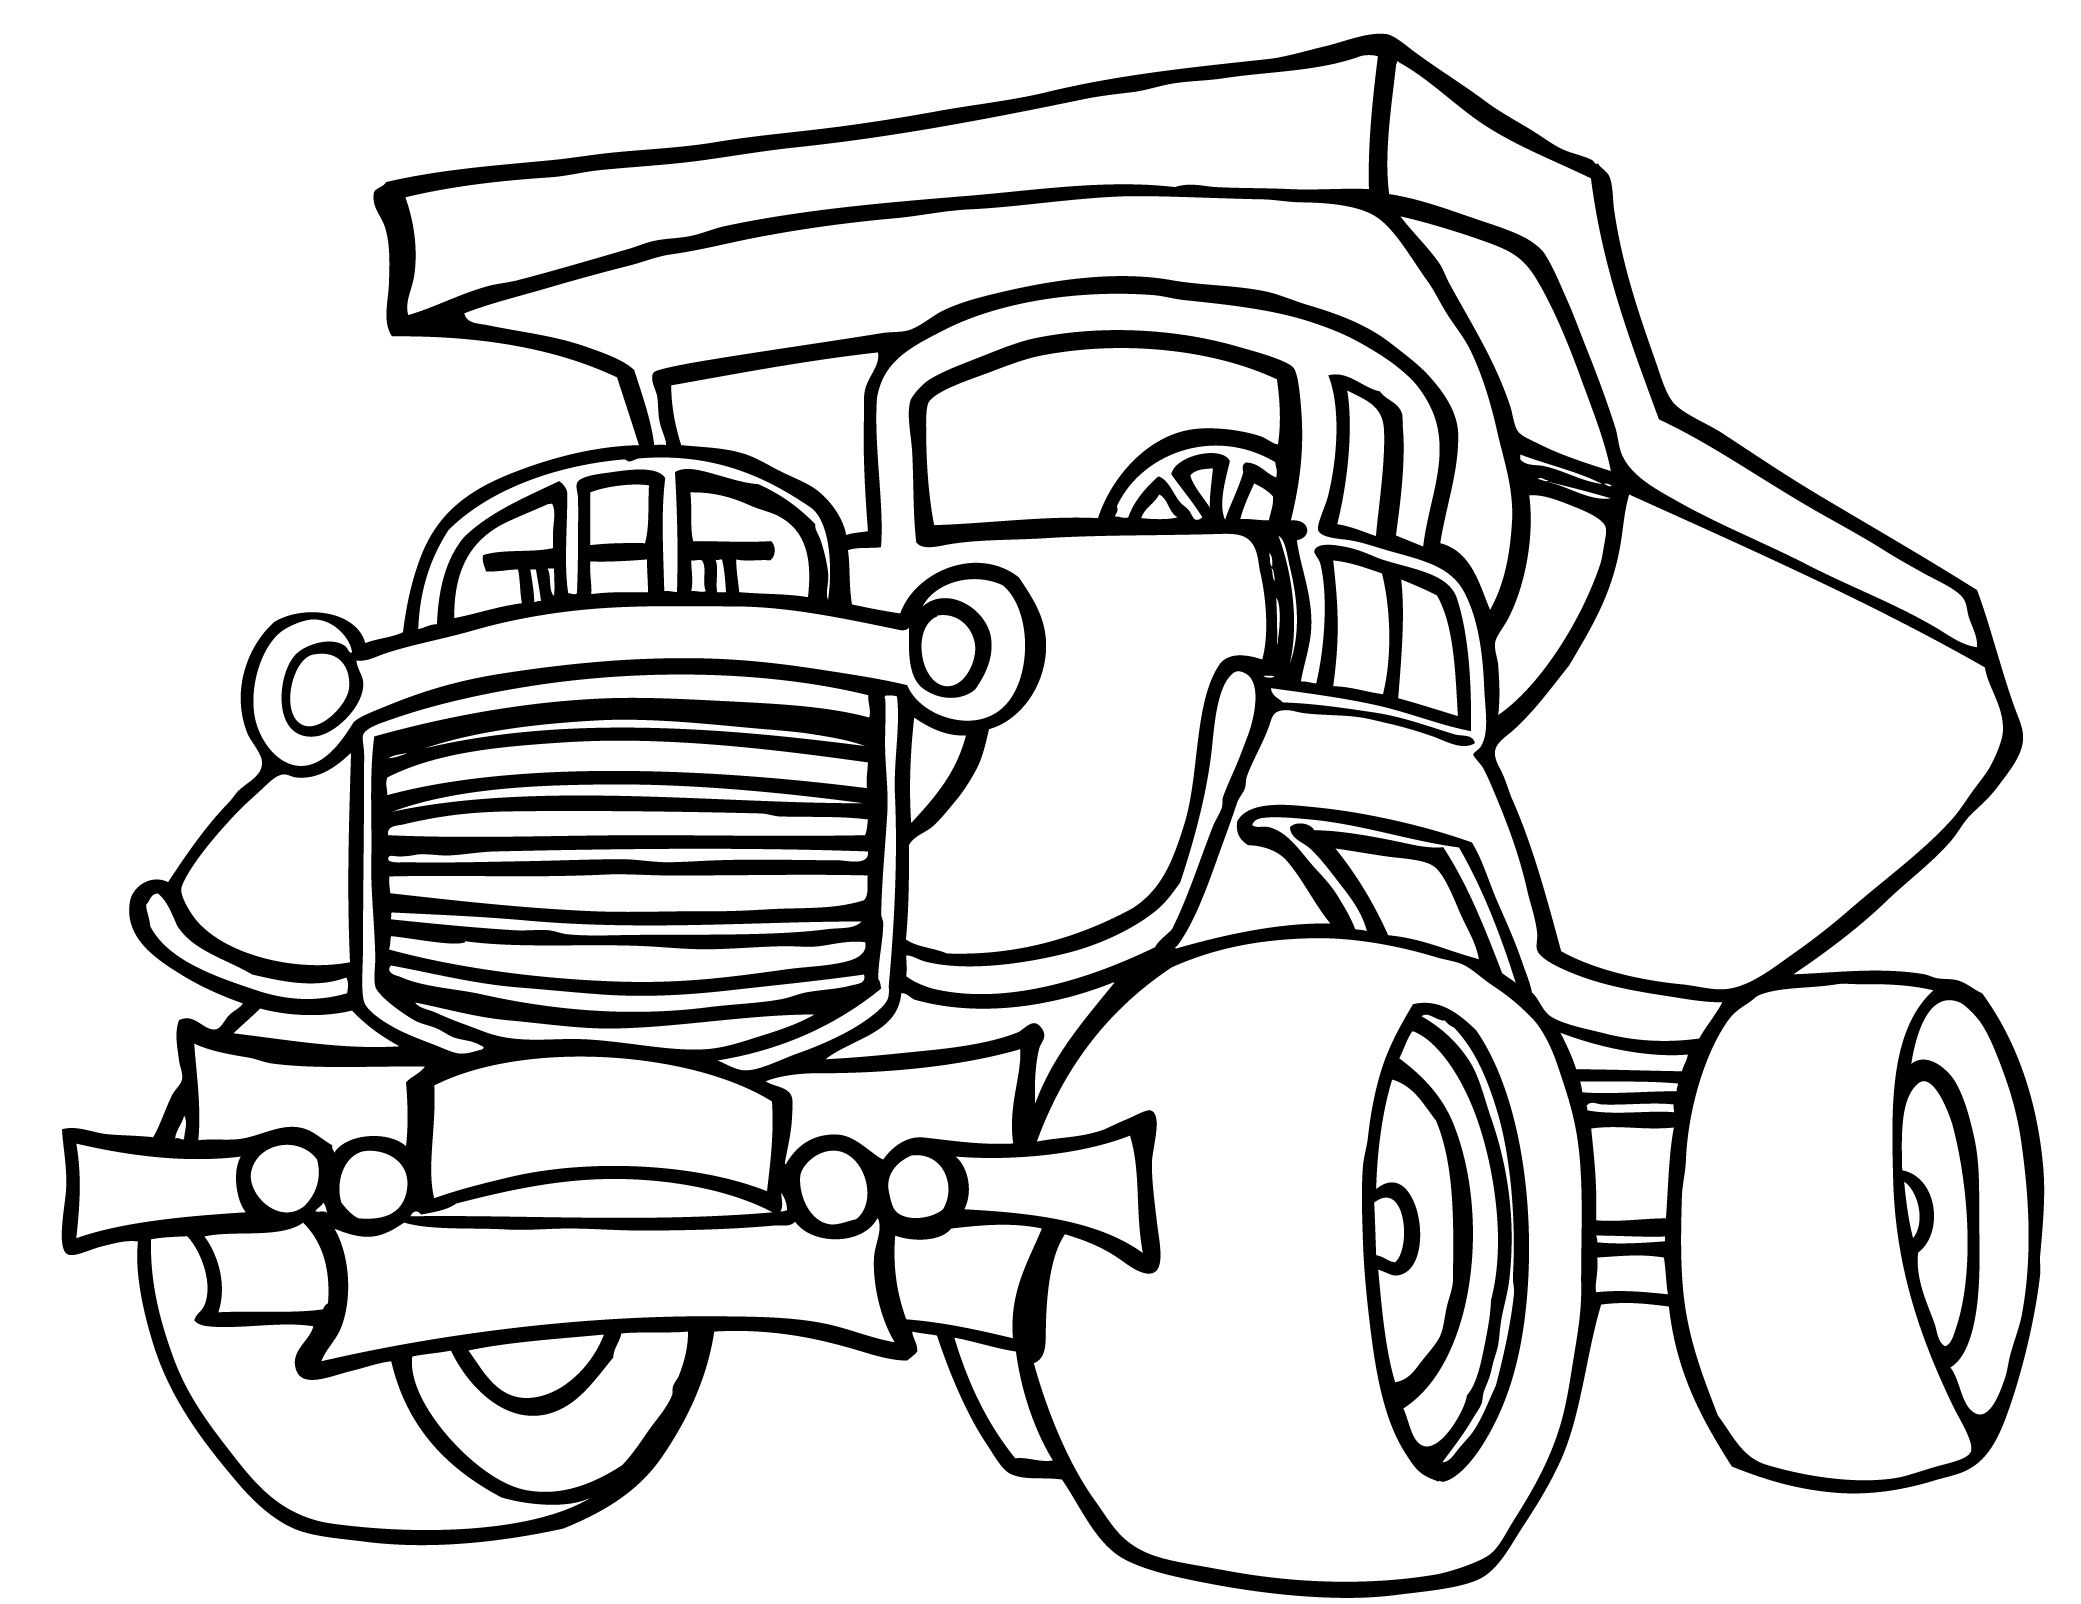 Garbage truck coloring book - Kids Always Adore Different Shapes Patterns If You Want To Help Nurture Their Artistic Abilities Give These Fun Free Printable Dump Truck Coloring Pages